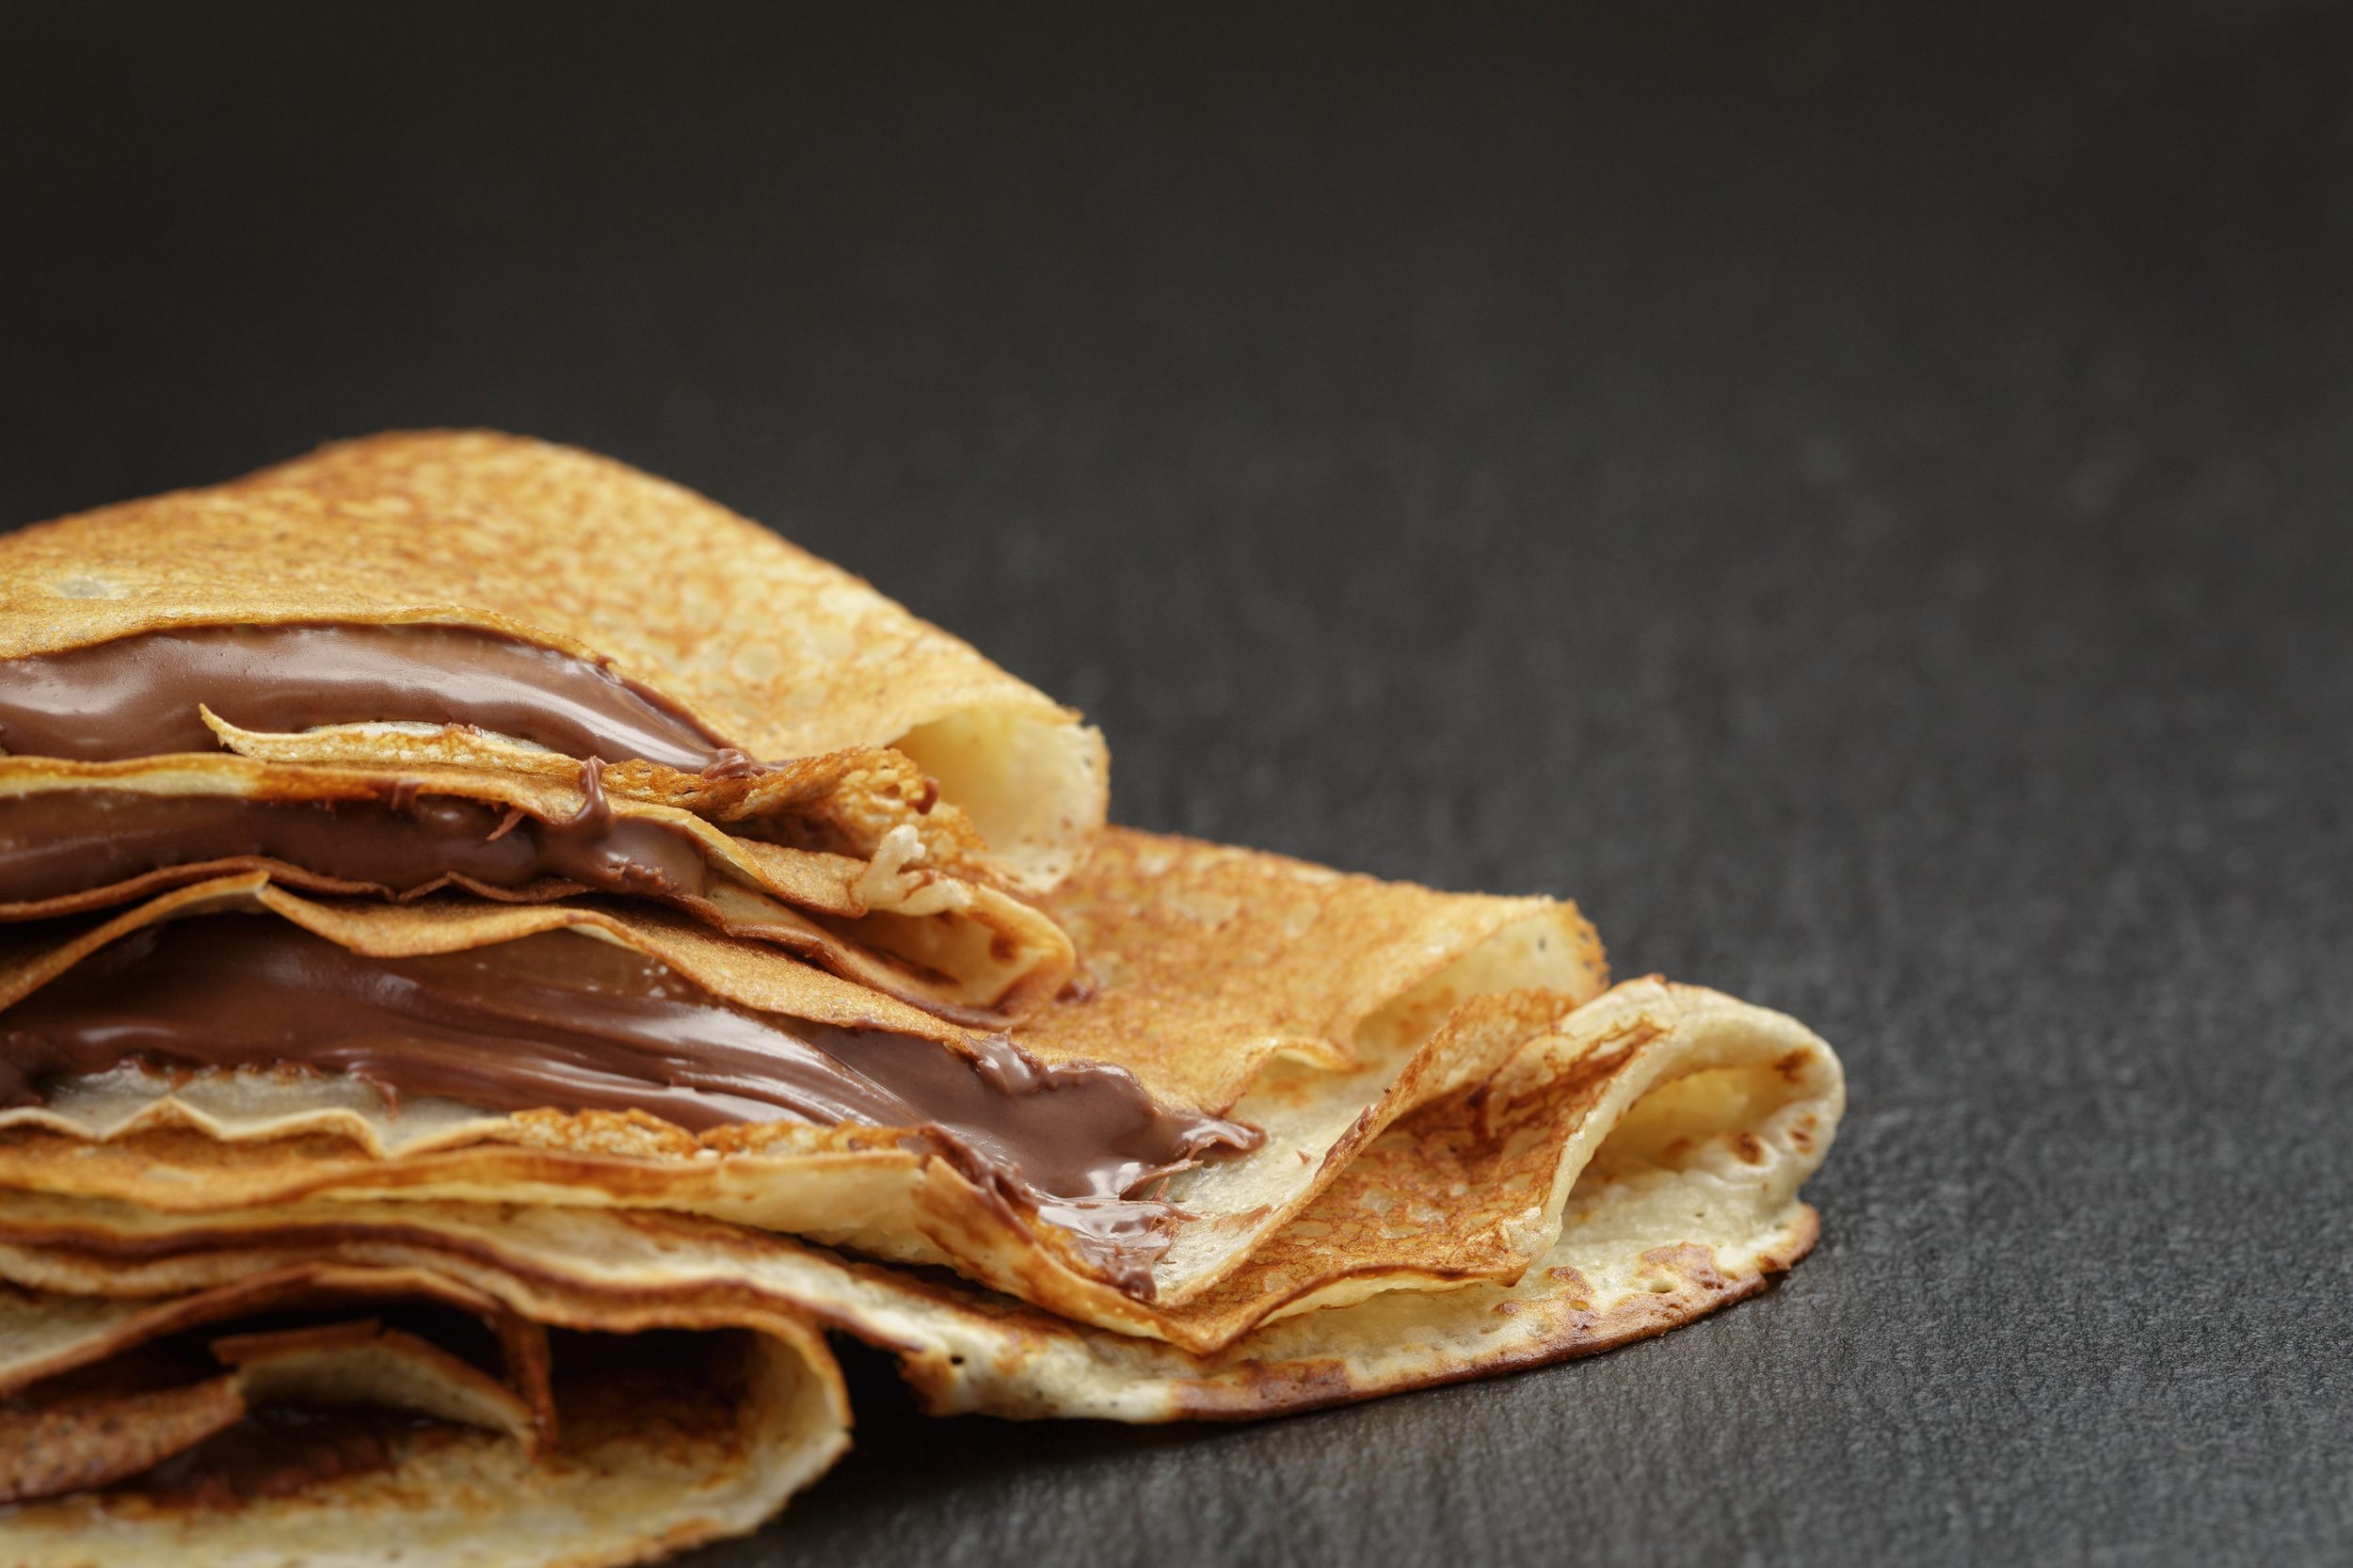 crepes with chocolate 2.jpg